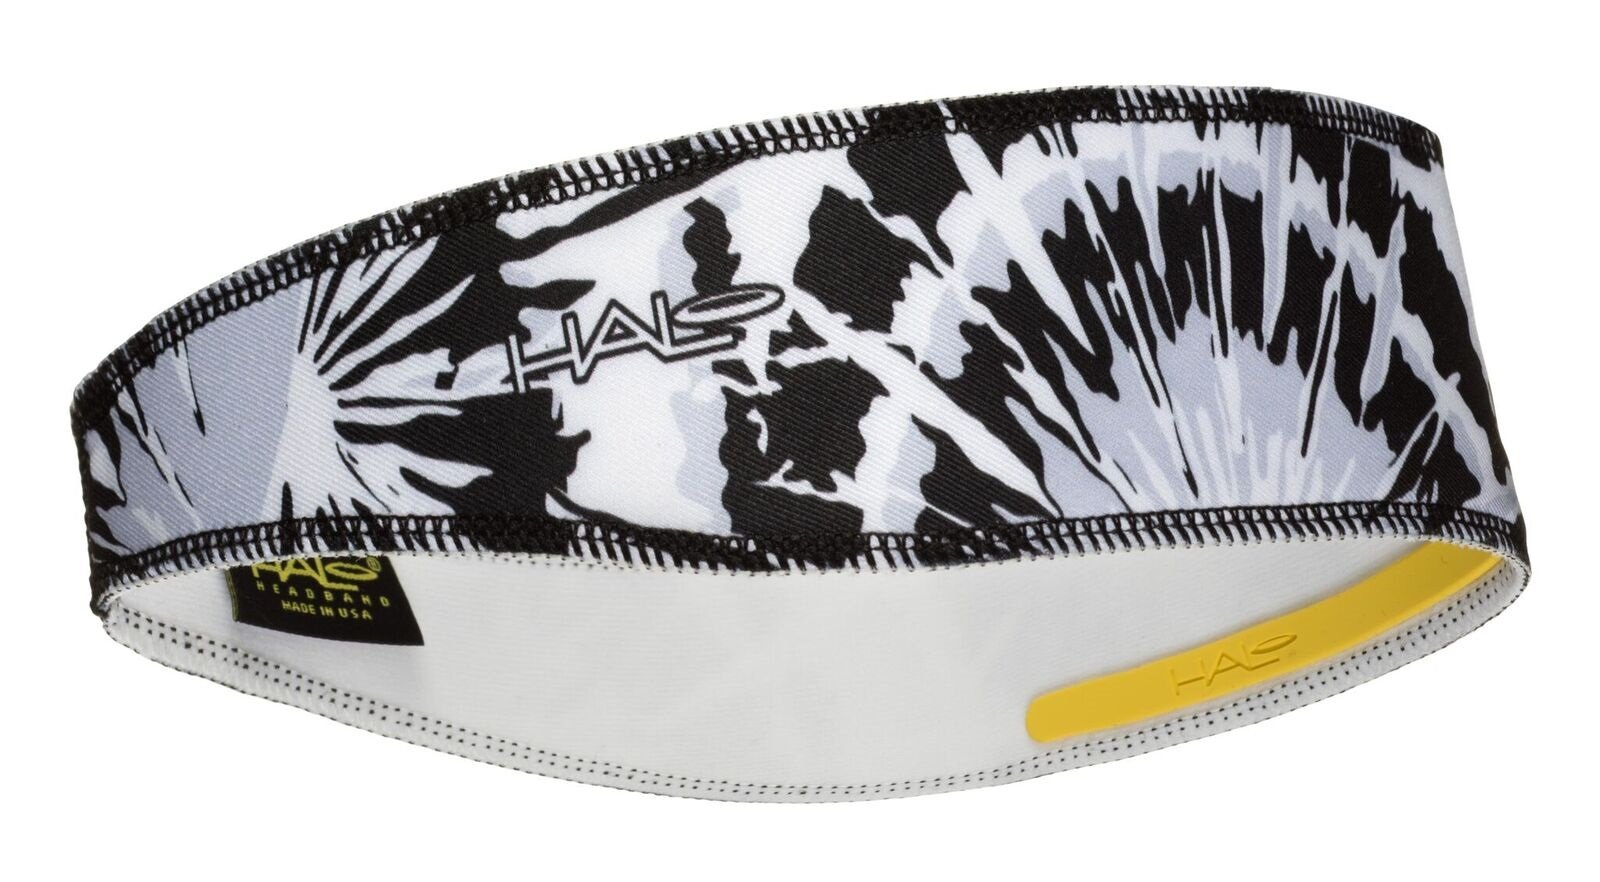 Halo Headbands Halo II Sweatband Pullover, Black Tie Dye by Halo Headbands